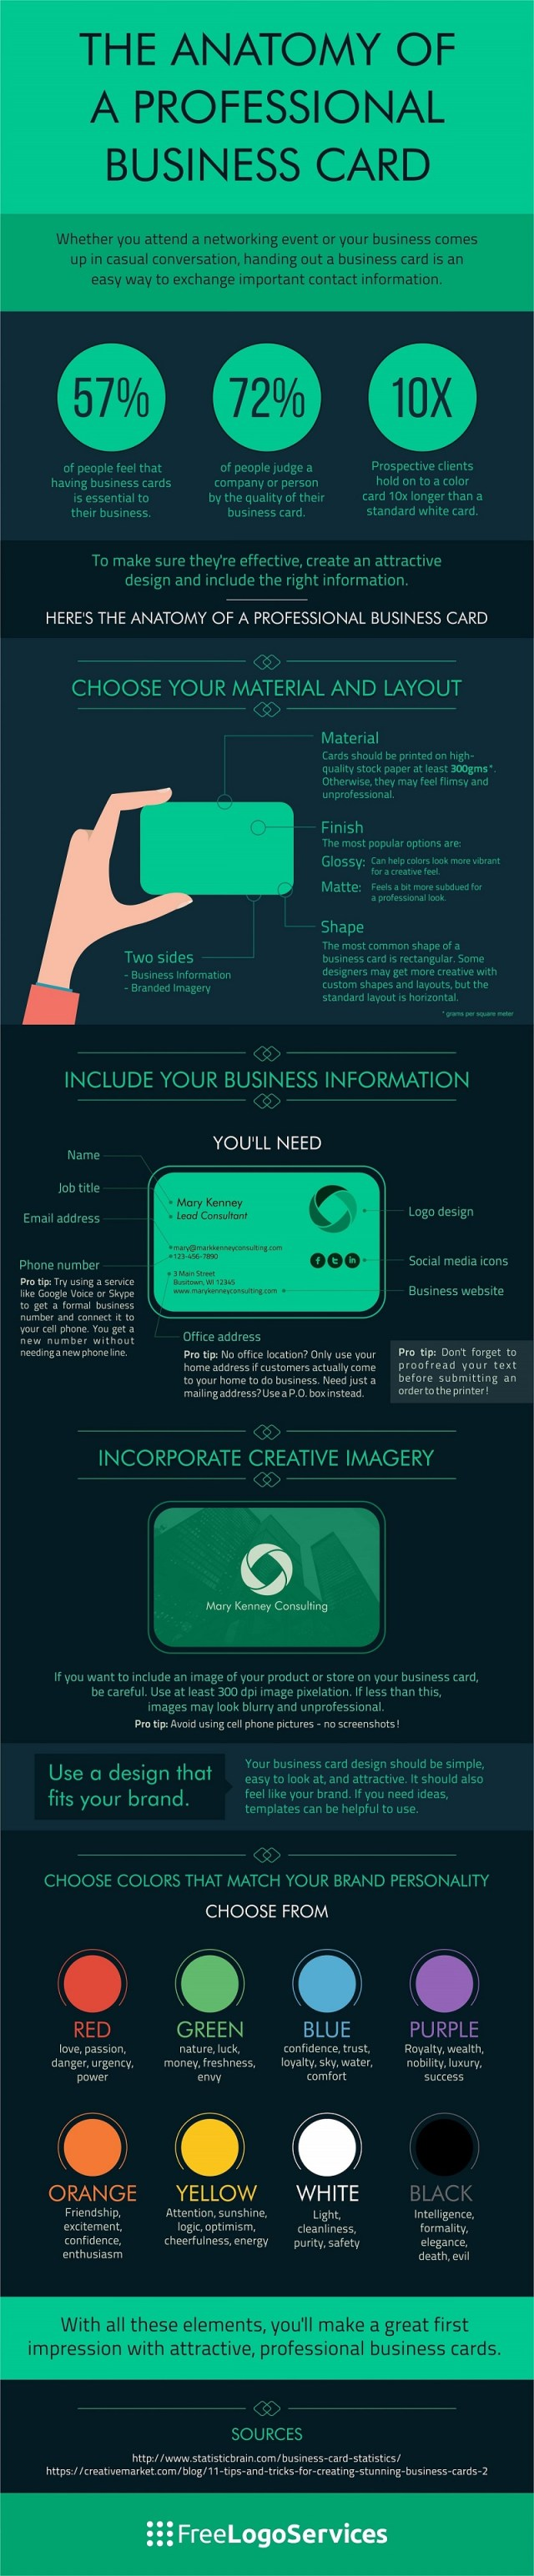 Anatomy of a Professional Business Card